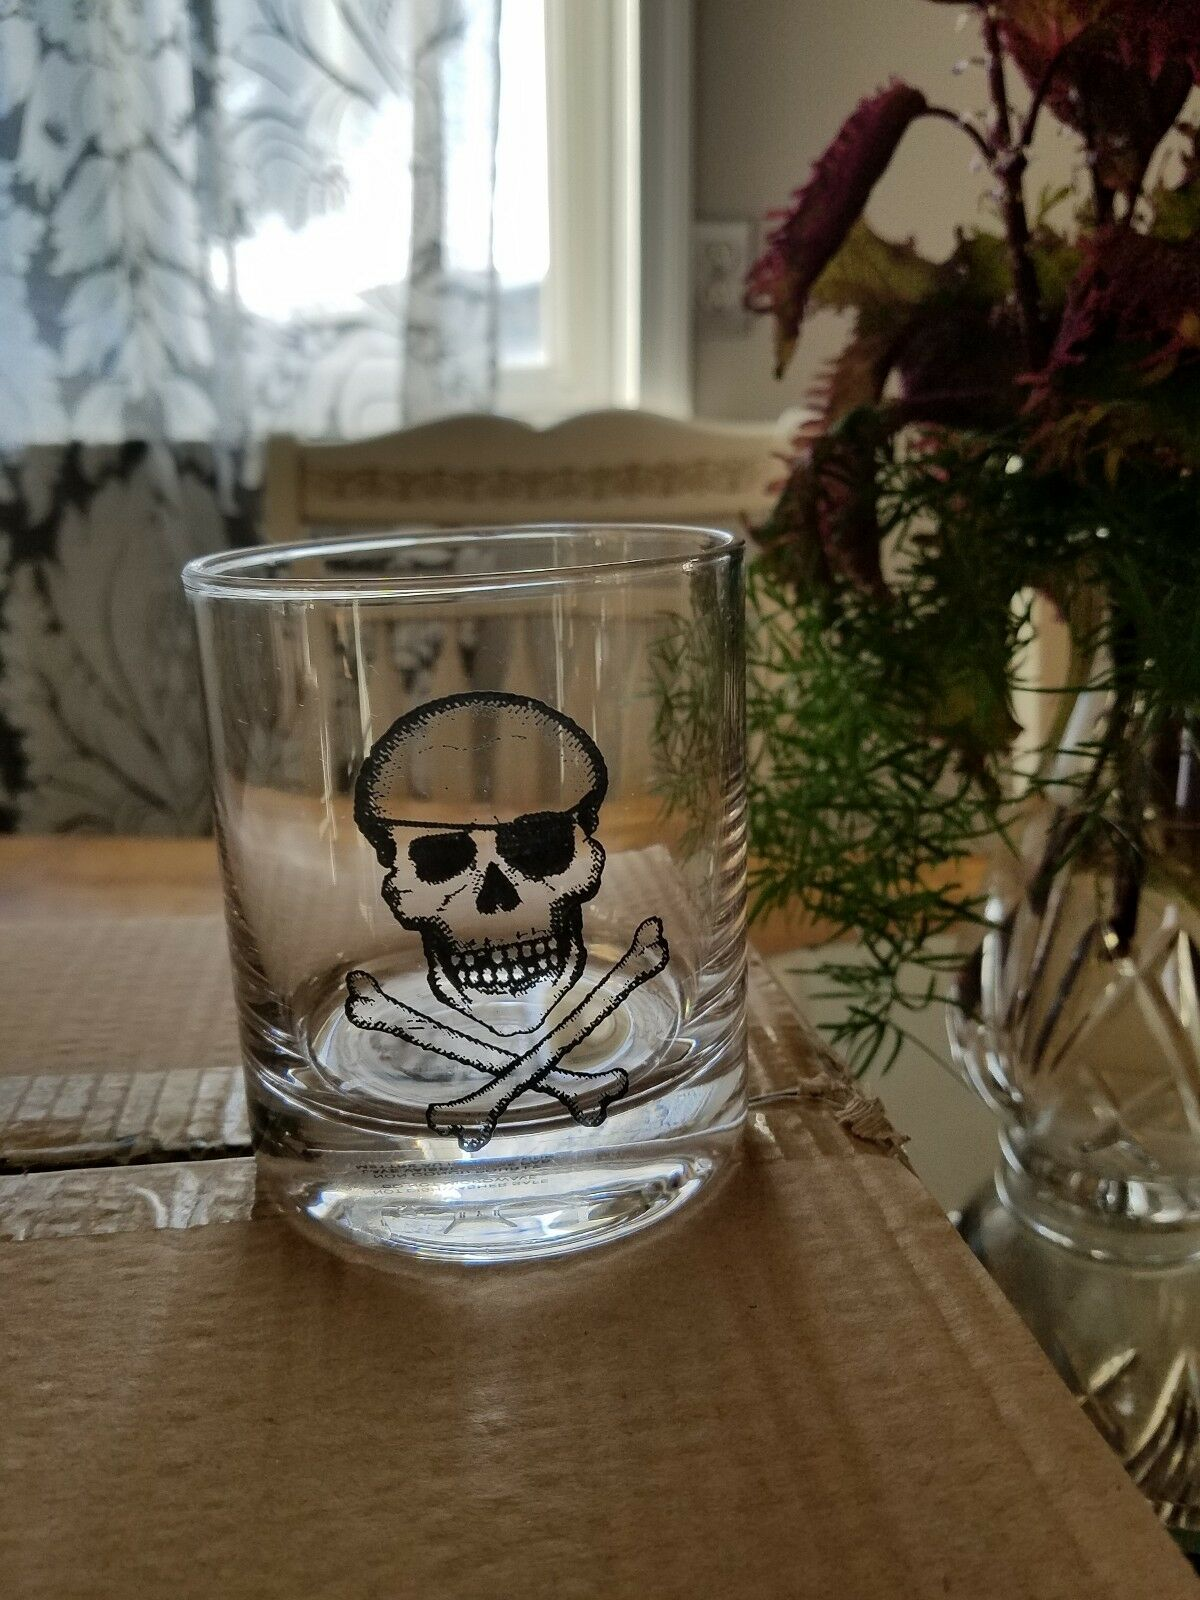 Pottery Barn Skull & Crossbone Double Old Fashioned Glass Set 4 pirate Halloween